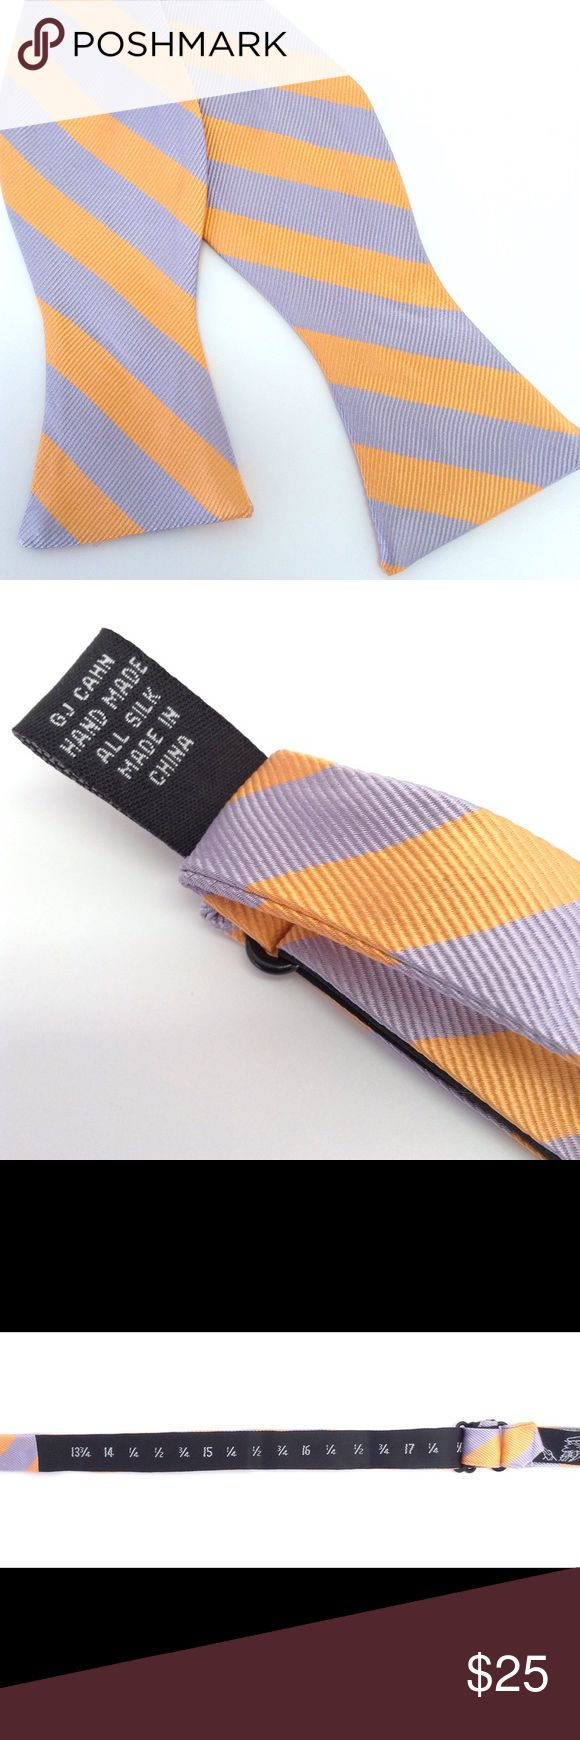 NWOT Silk GJ Cahn Striped Bow Tie Easter UD010 This listing is for a New Without Tags GJ Cahn striped bow tie. 100% silk. Adjustable neck sizes. Lavender and orange, great colors for Easter and Spring!!!!!  Due to problems with lost packages in the mail over the past few years all of my packages are shipped Priority Mail. Each package includes a tracking number and insurance so that both sides of the transaction are protected. GJ Cahn  Accessories Ties